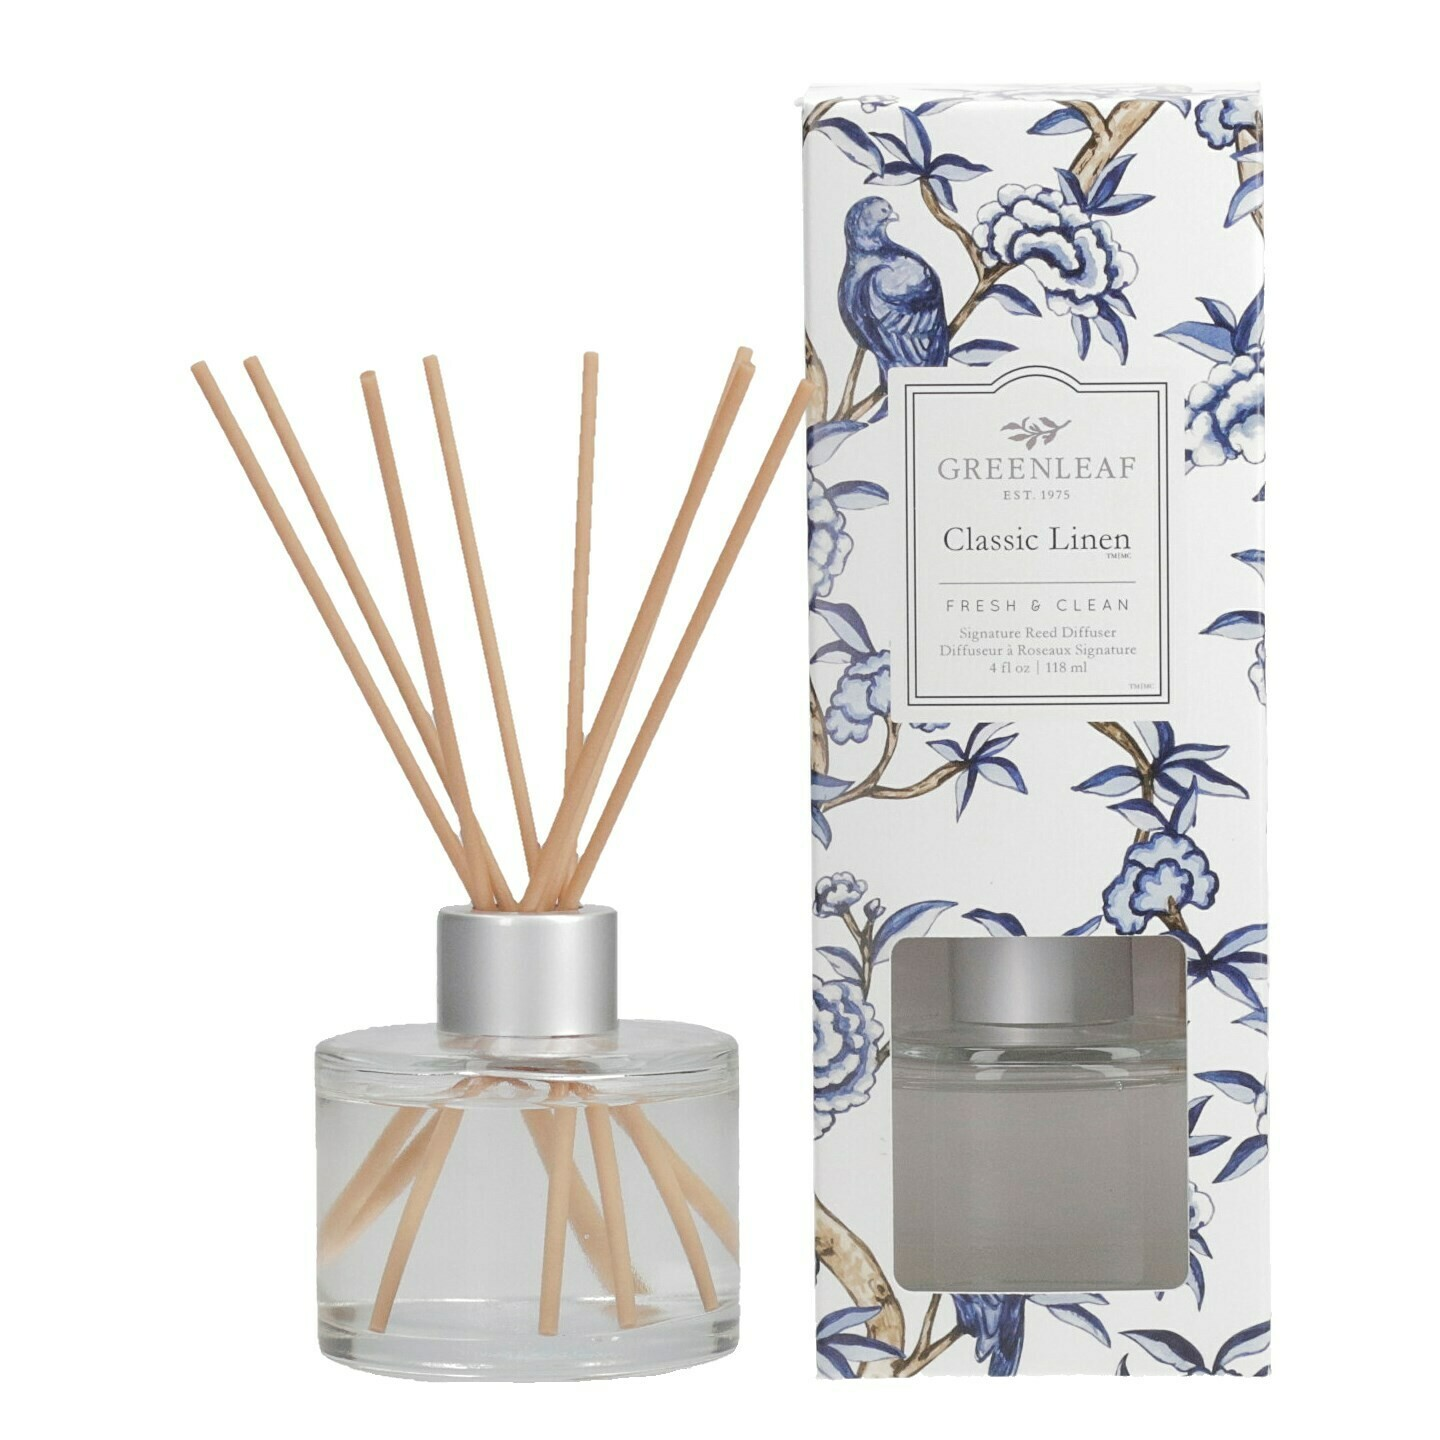 Classic Linen - Reed Diffuser (FINAL SALE)